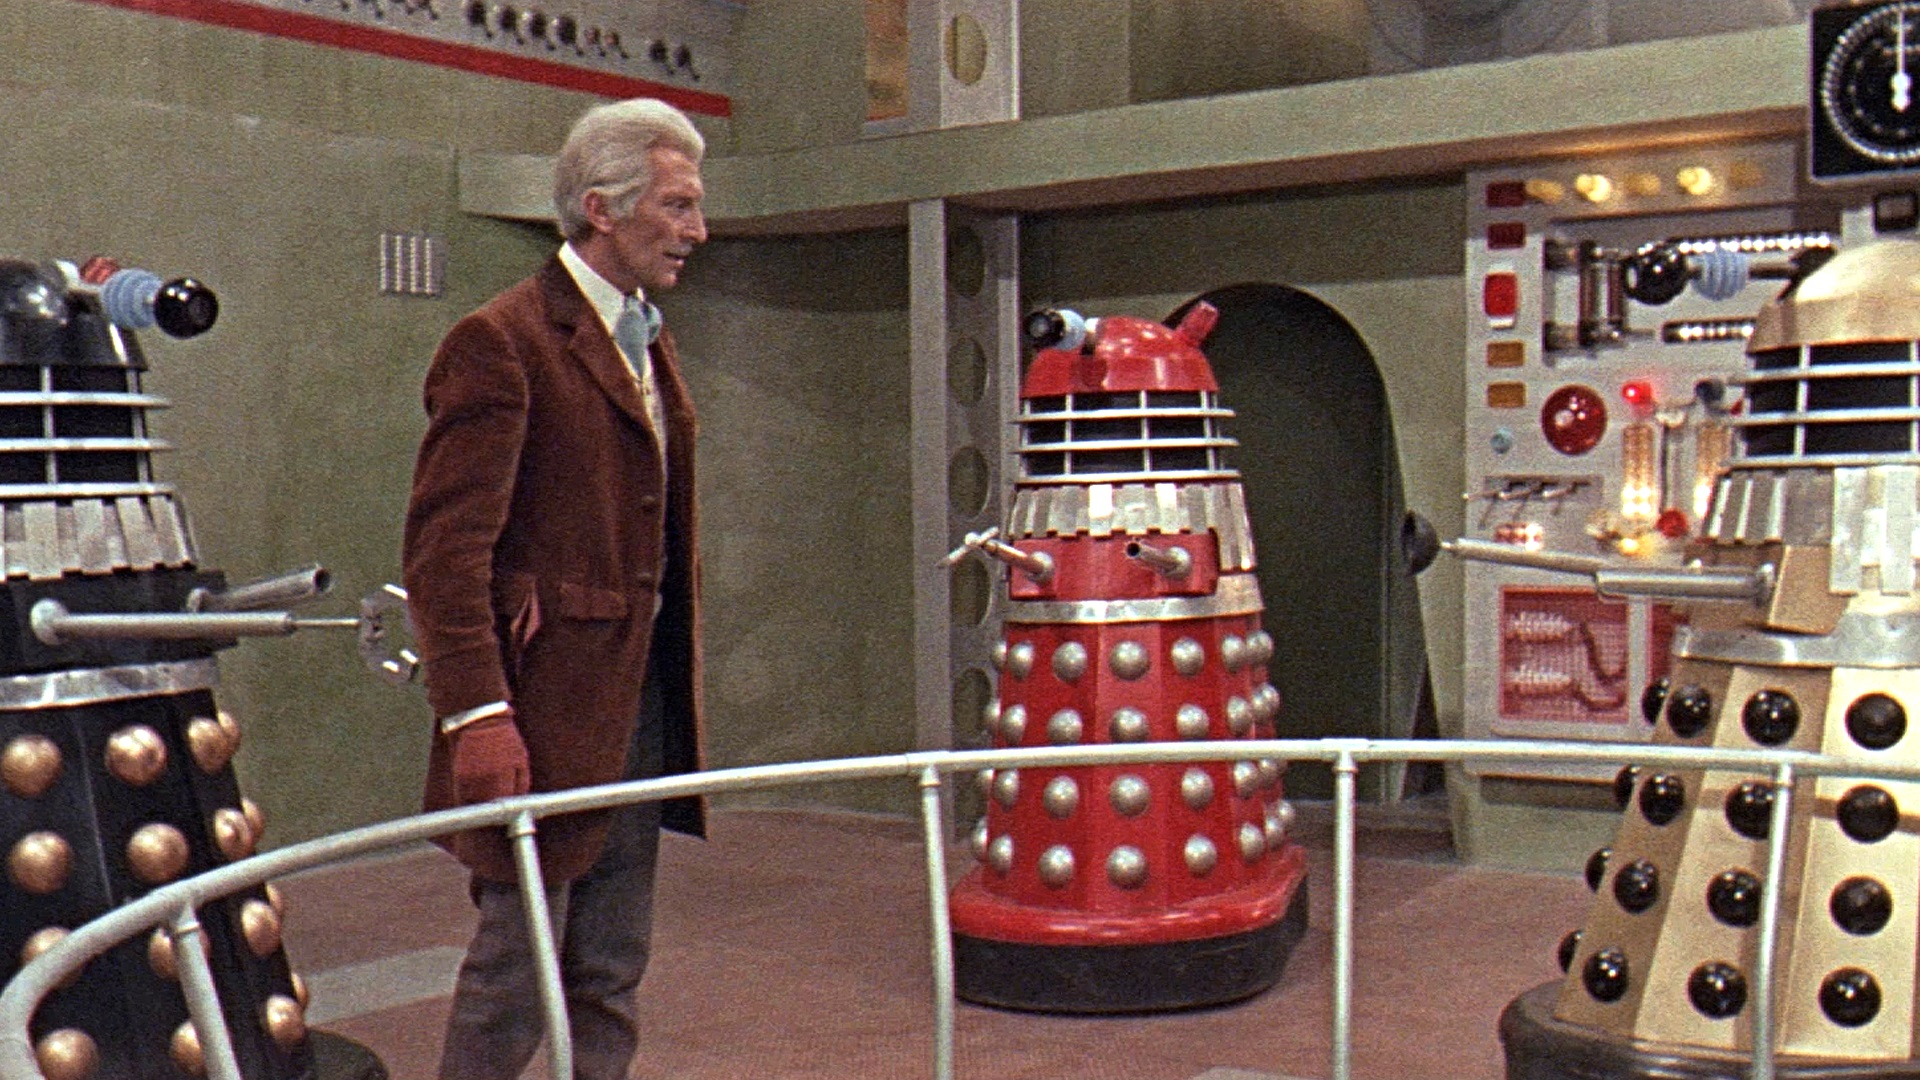 Doctor Who (Peter Cushing) and the Daleks in Daleks' Invasion 2150 A.D. (1966)